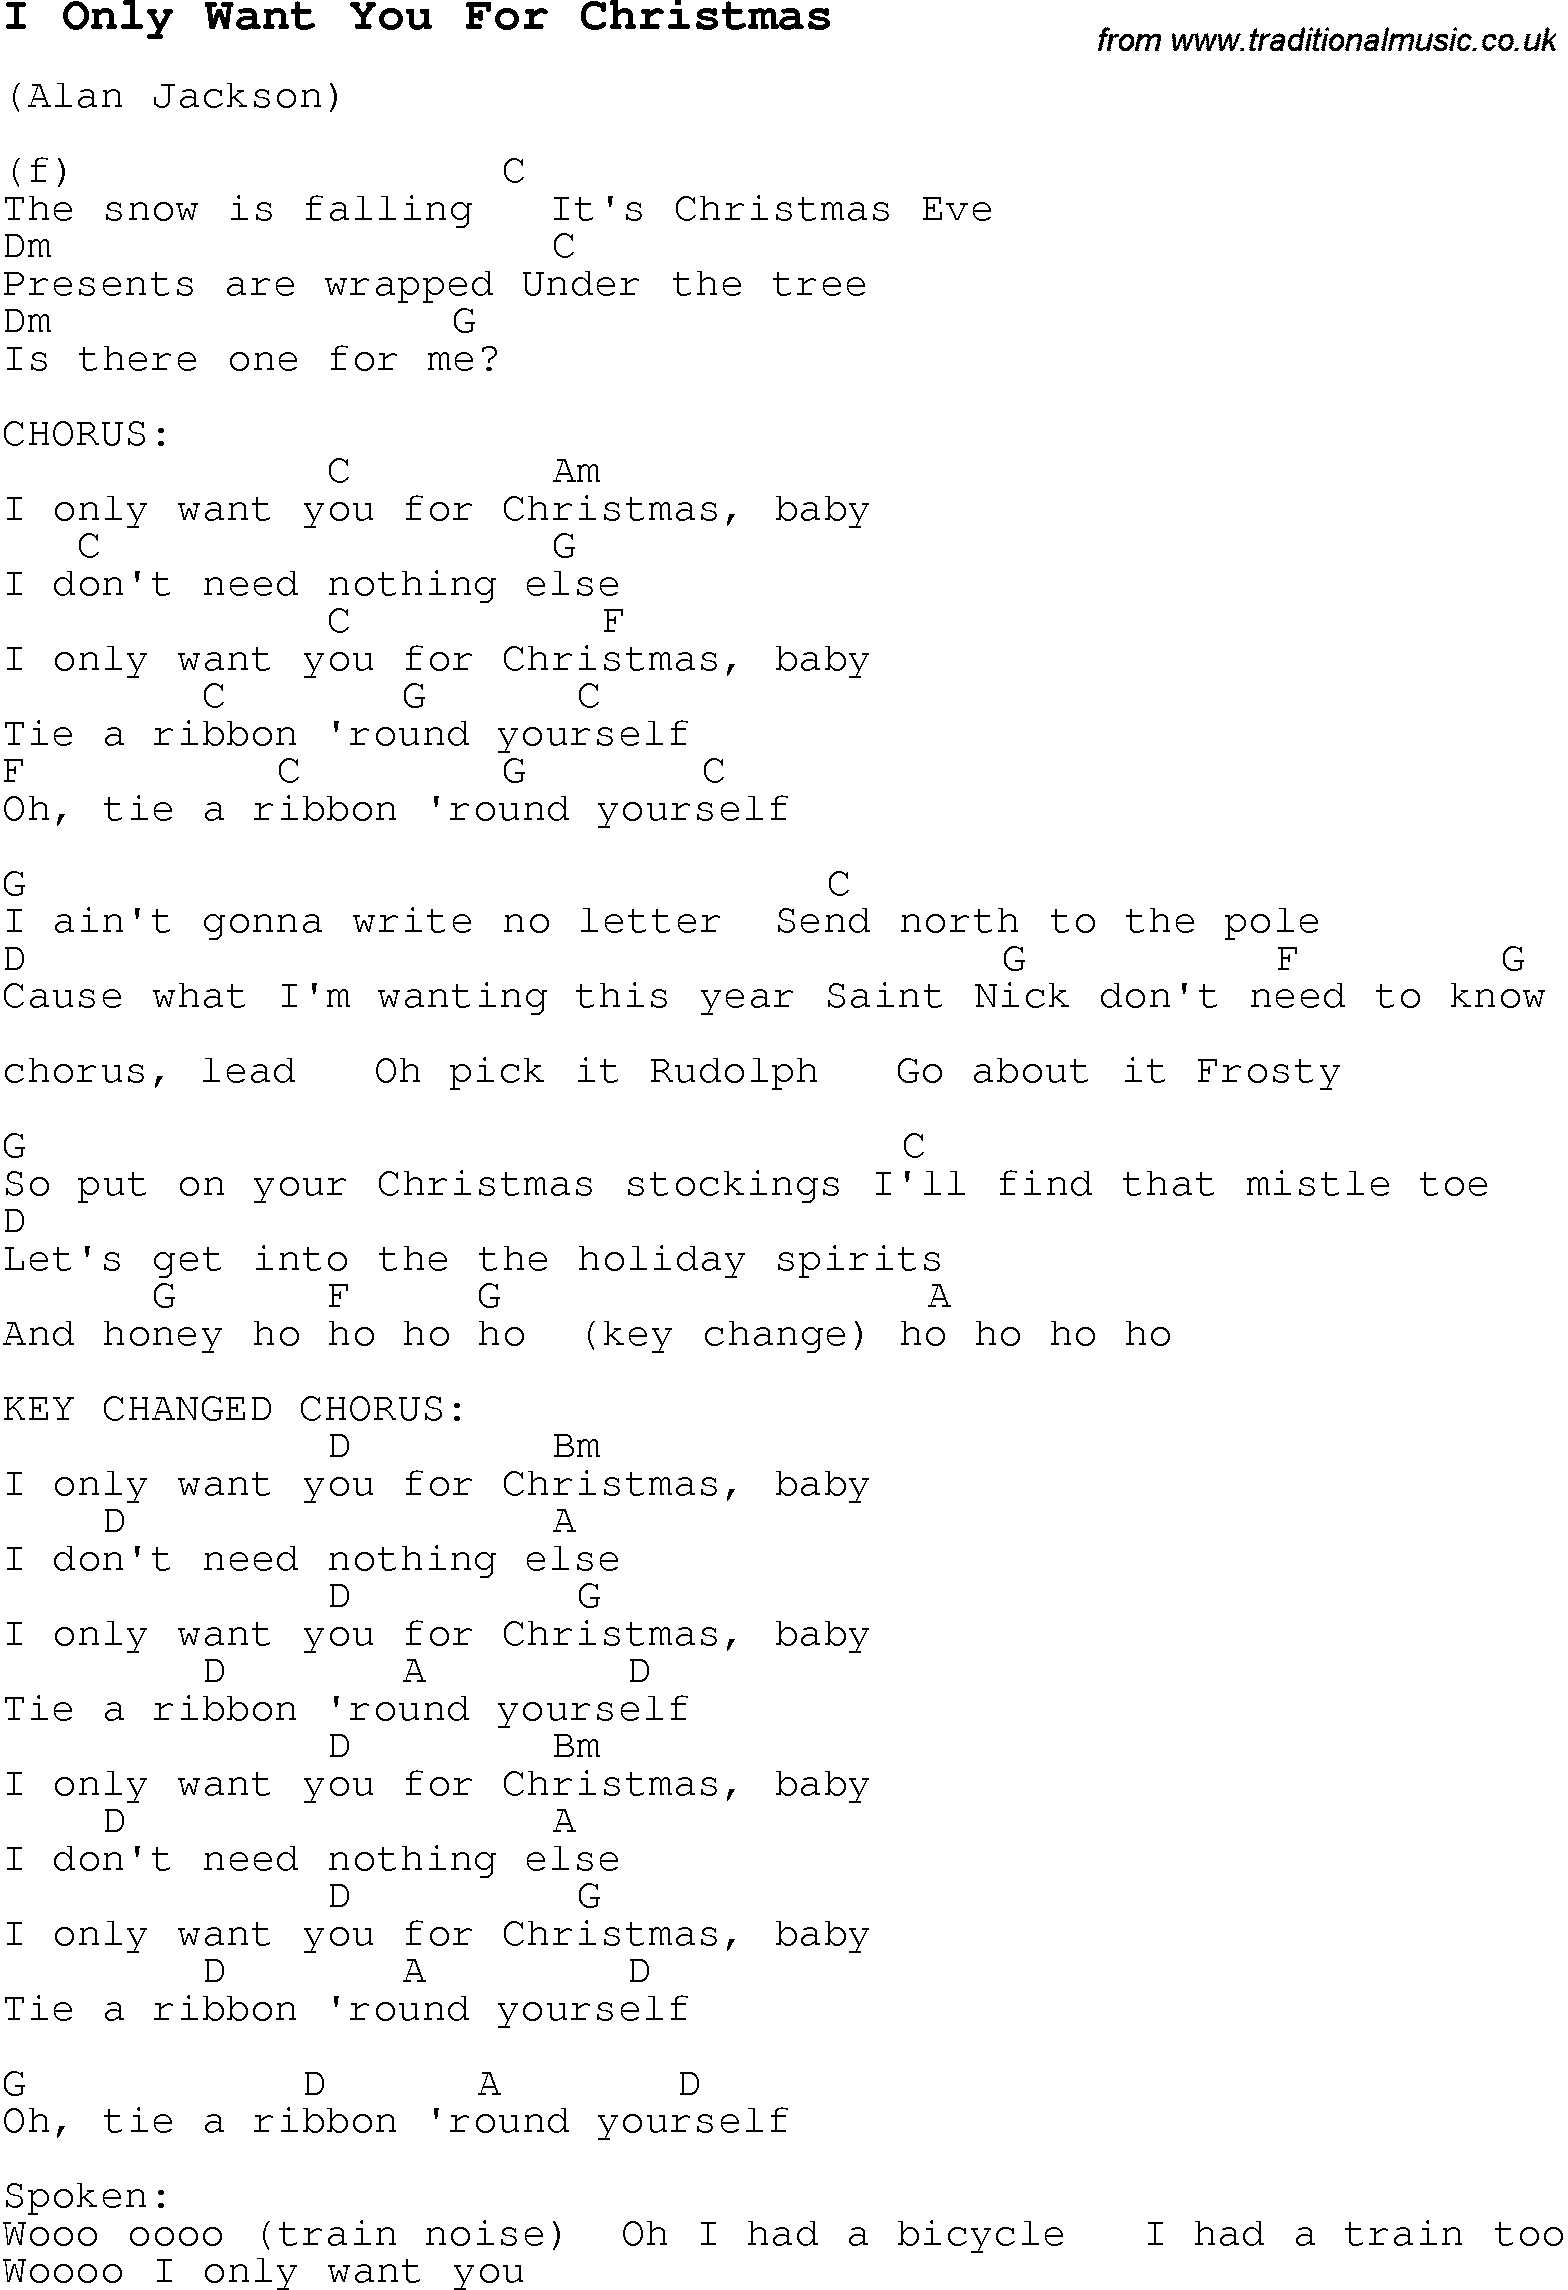 Christmas Carol/Song lyrics with chords for I Only Want You For ...